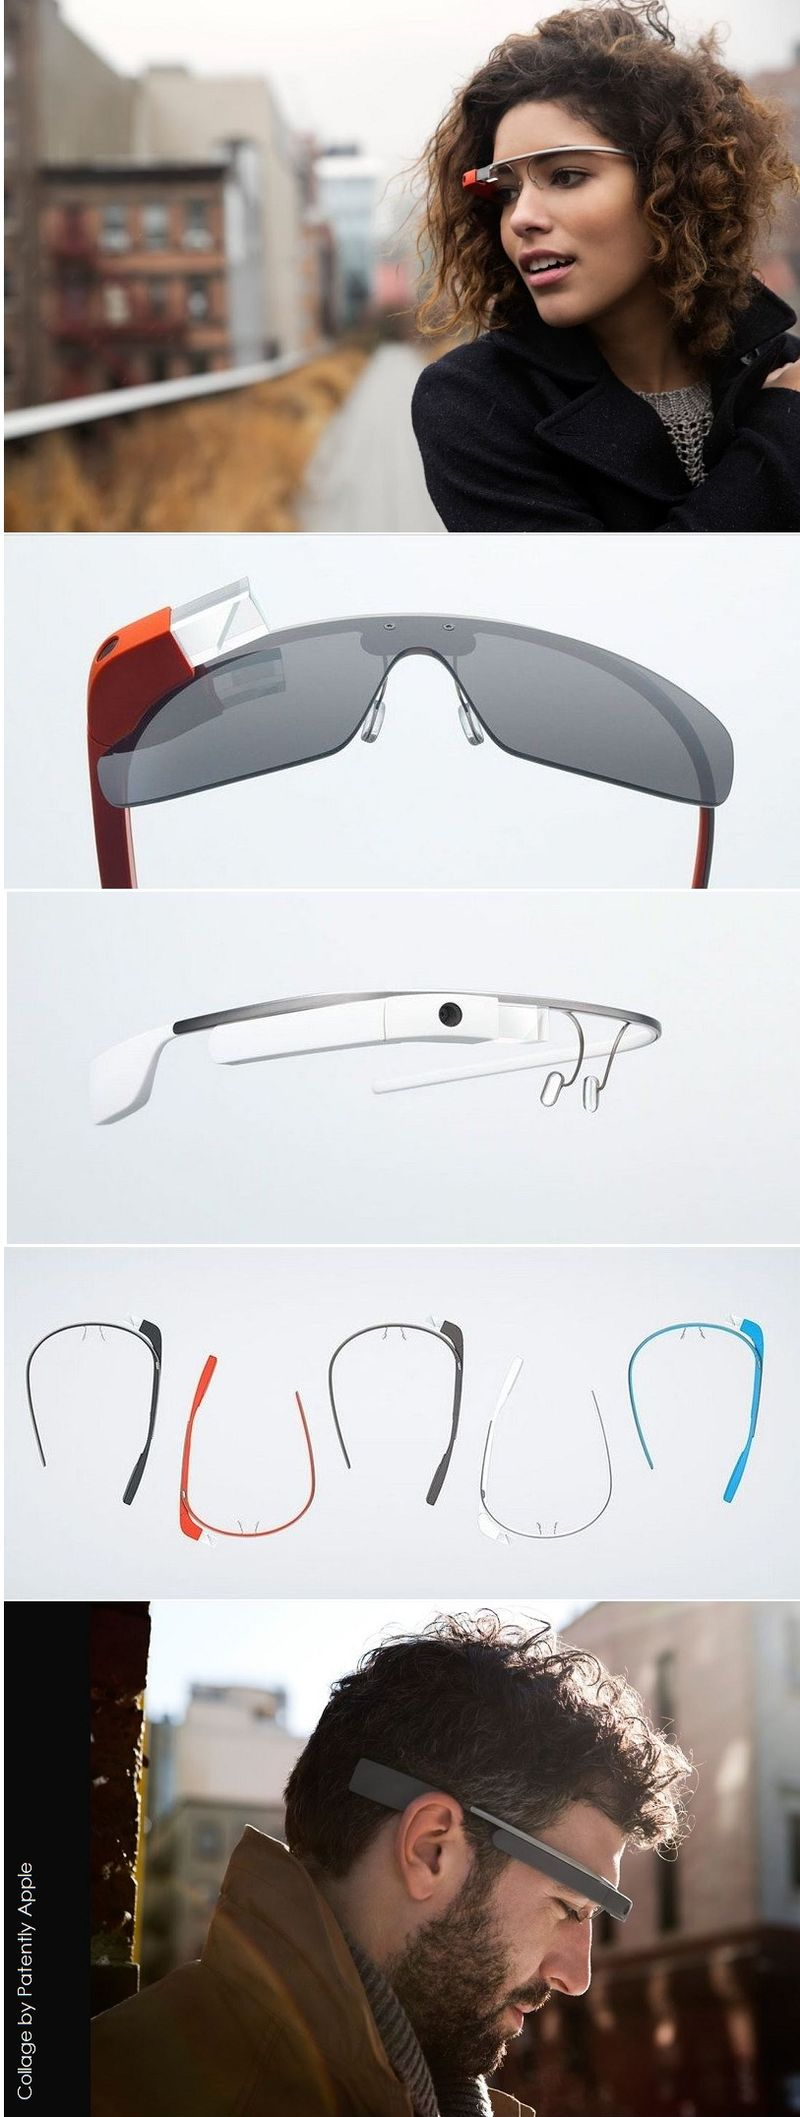 3. Google Glass 2013 Images